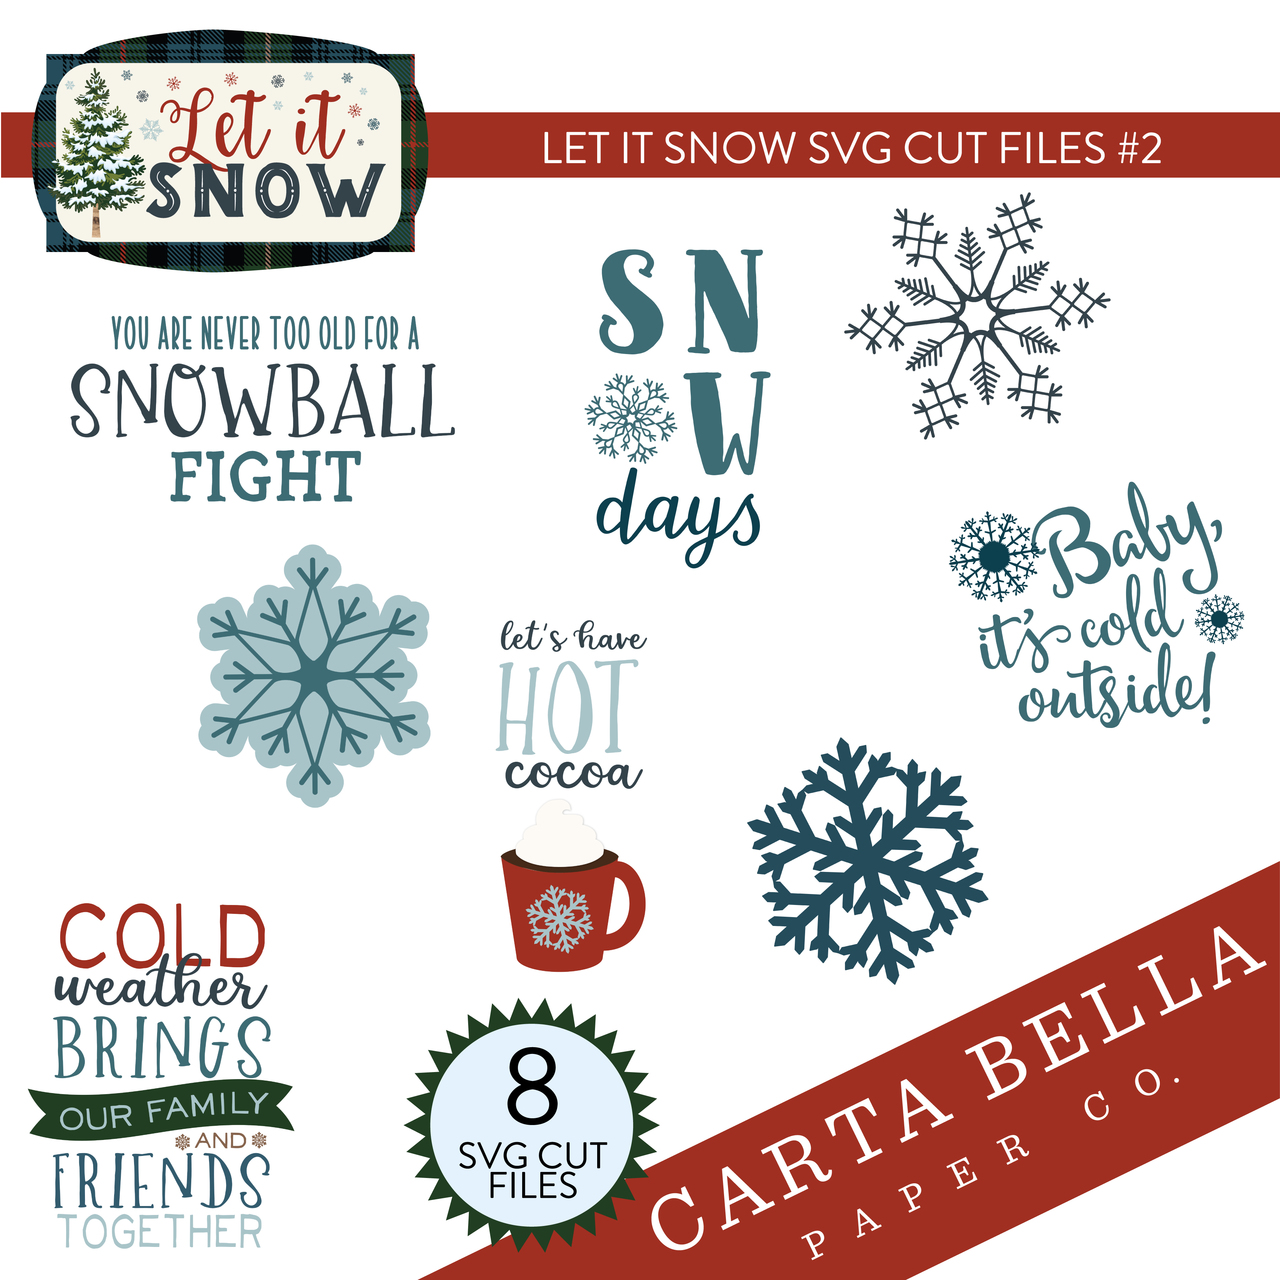 Let It Snow SVG Cut Files #2